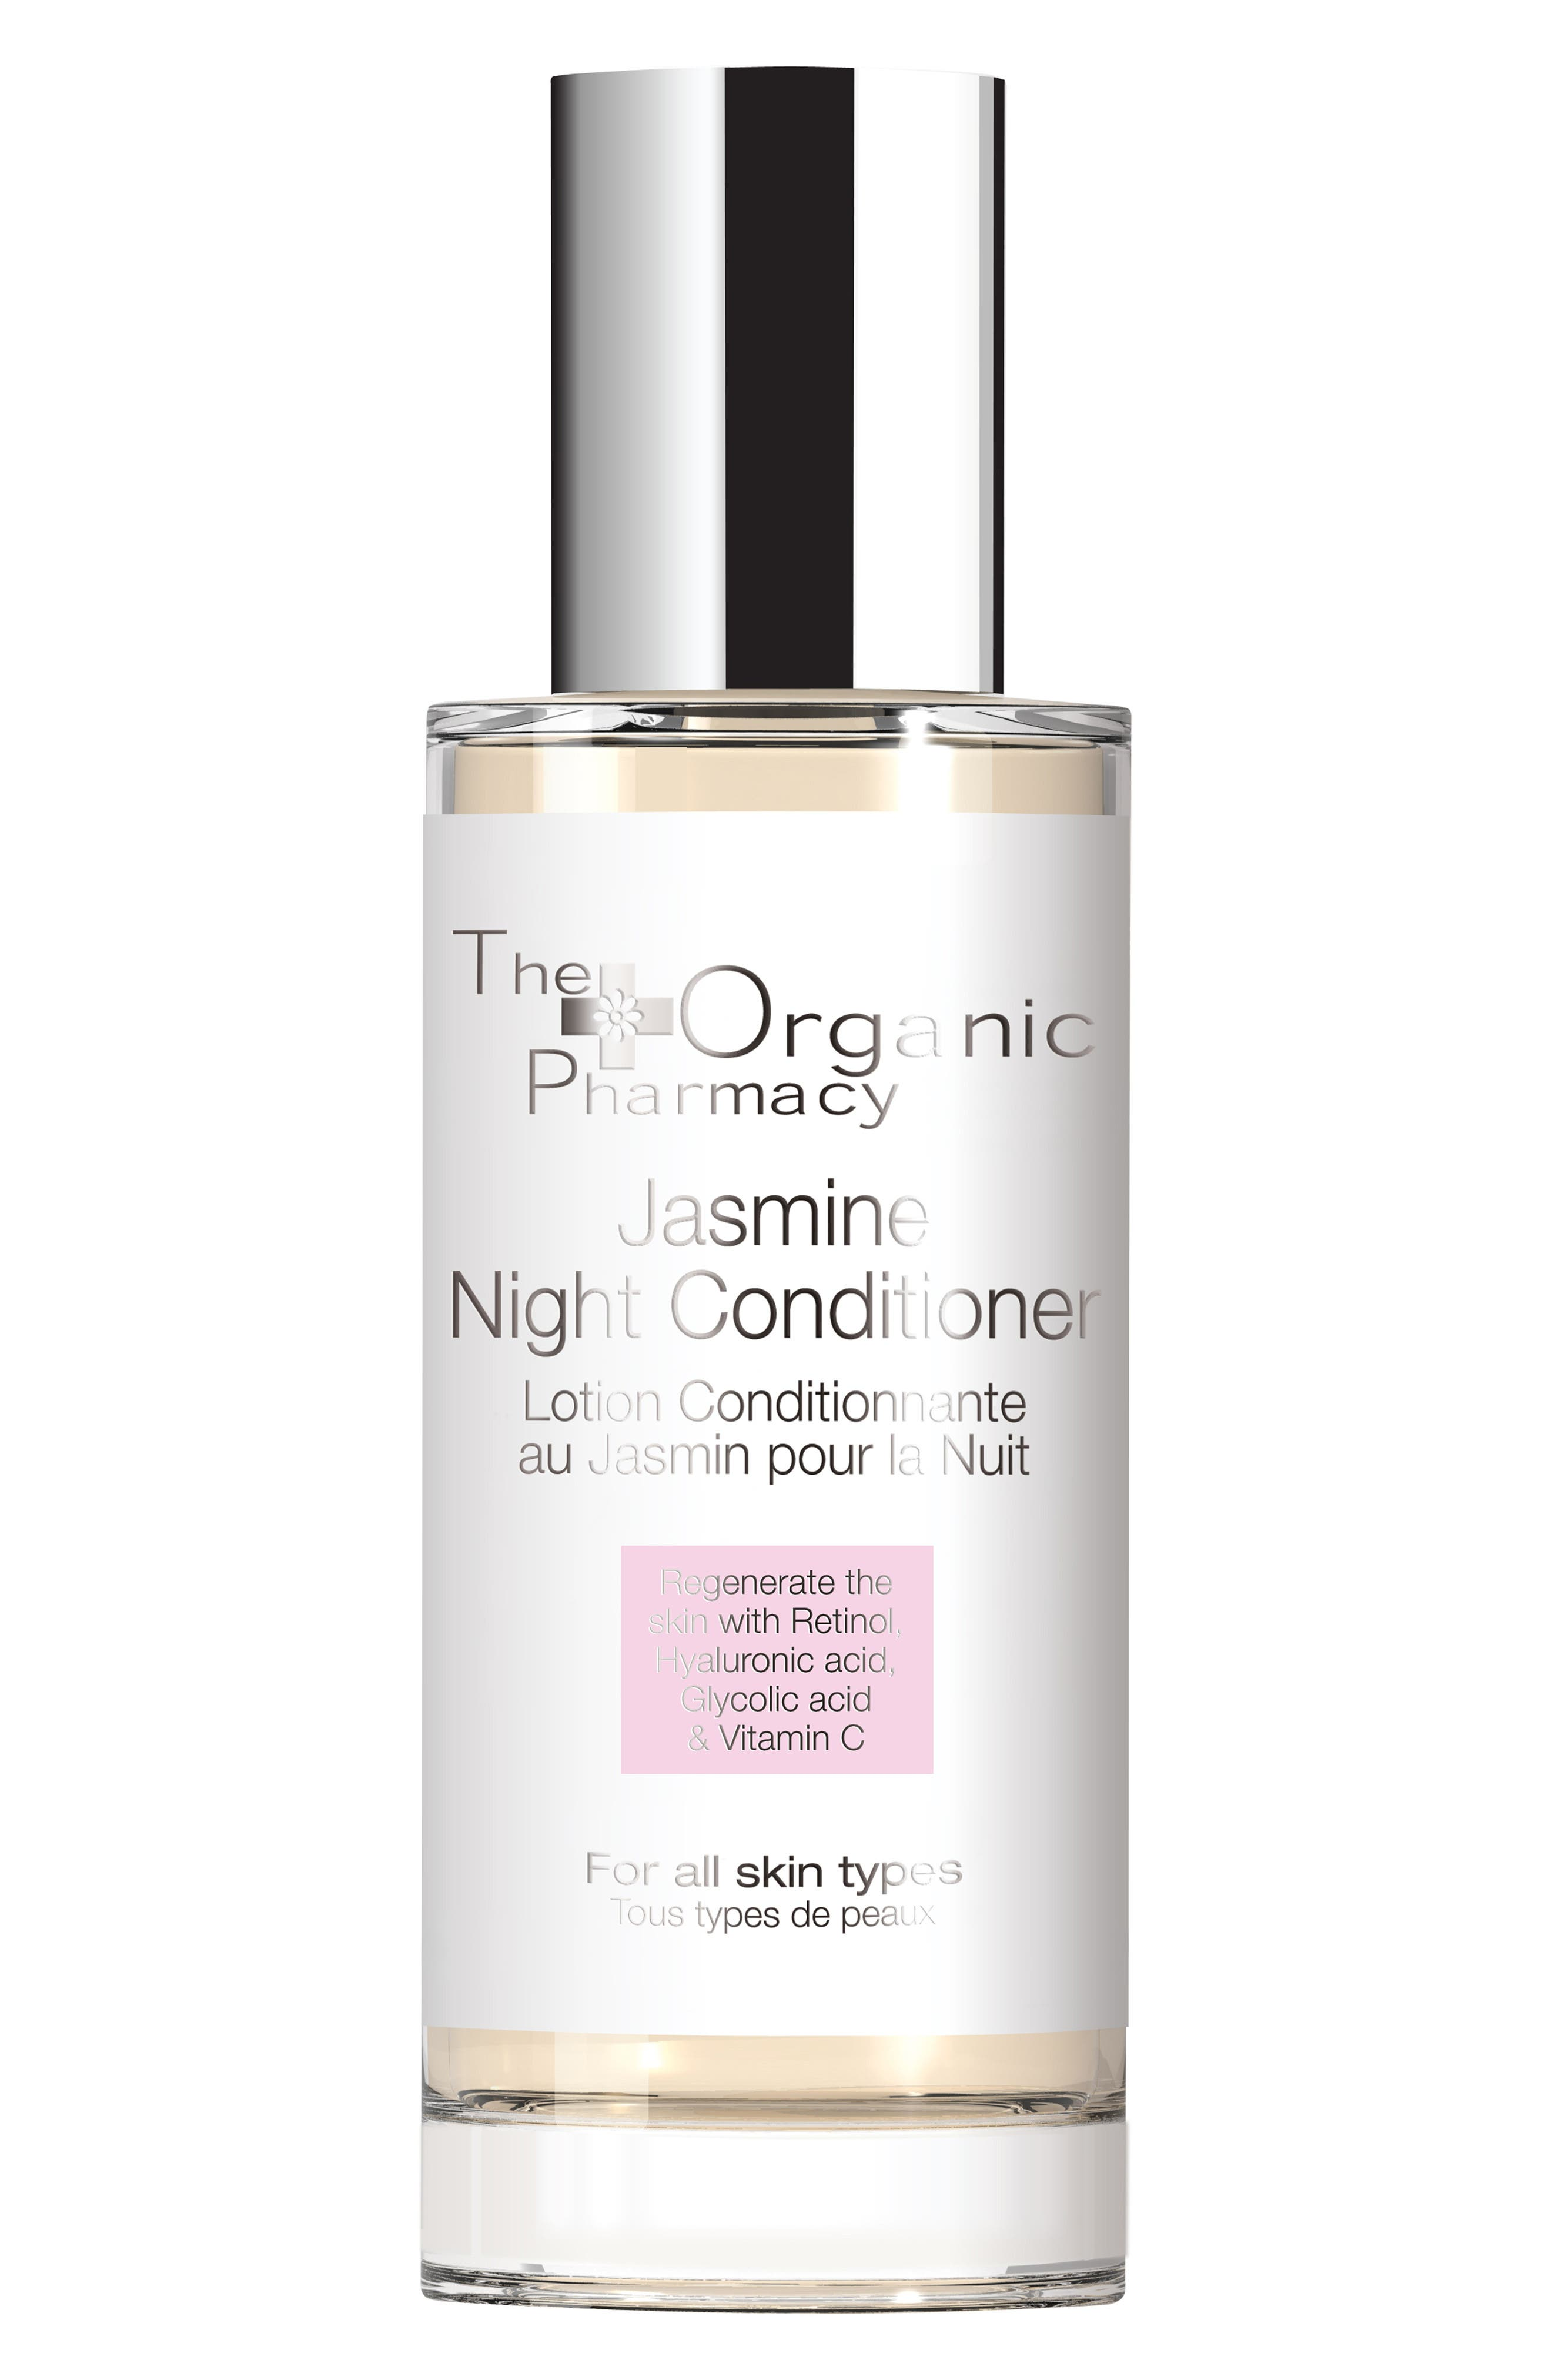 Jasmine Night Conditioning Spray,                             Main thumbnail 1, color,                             NO COLOR